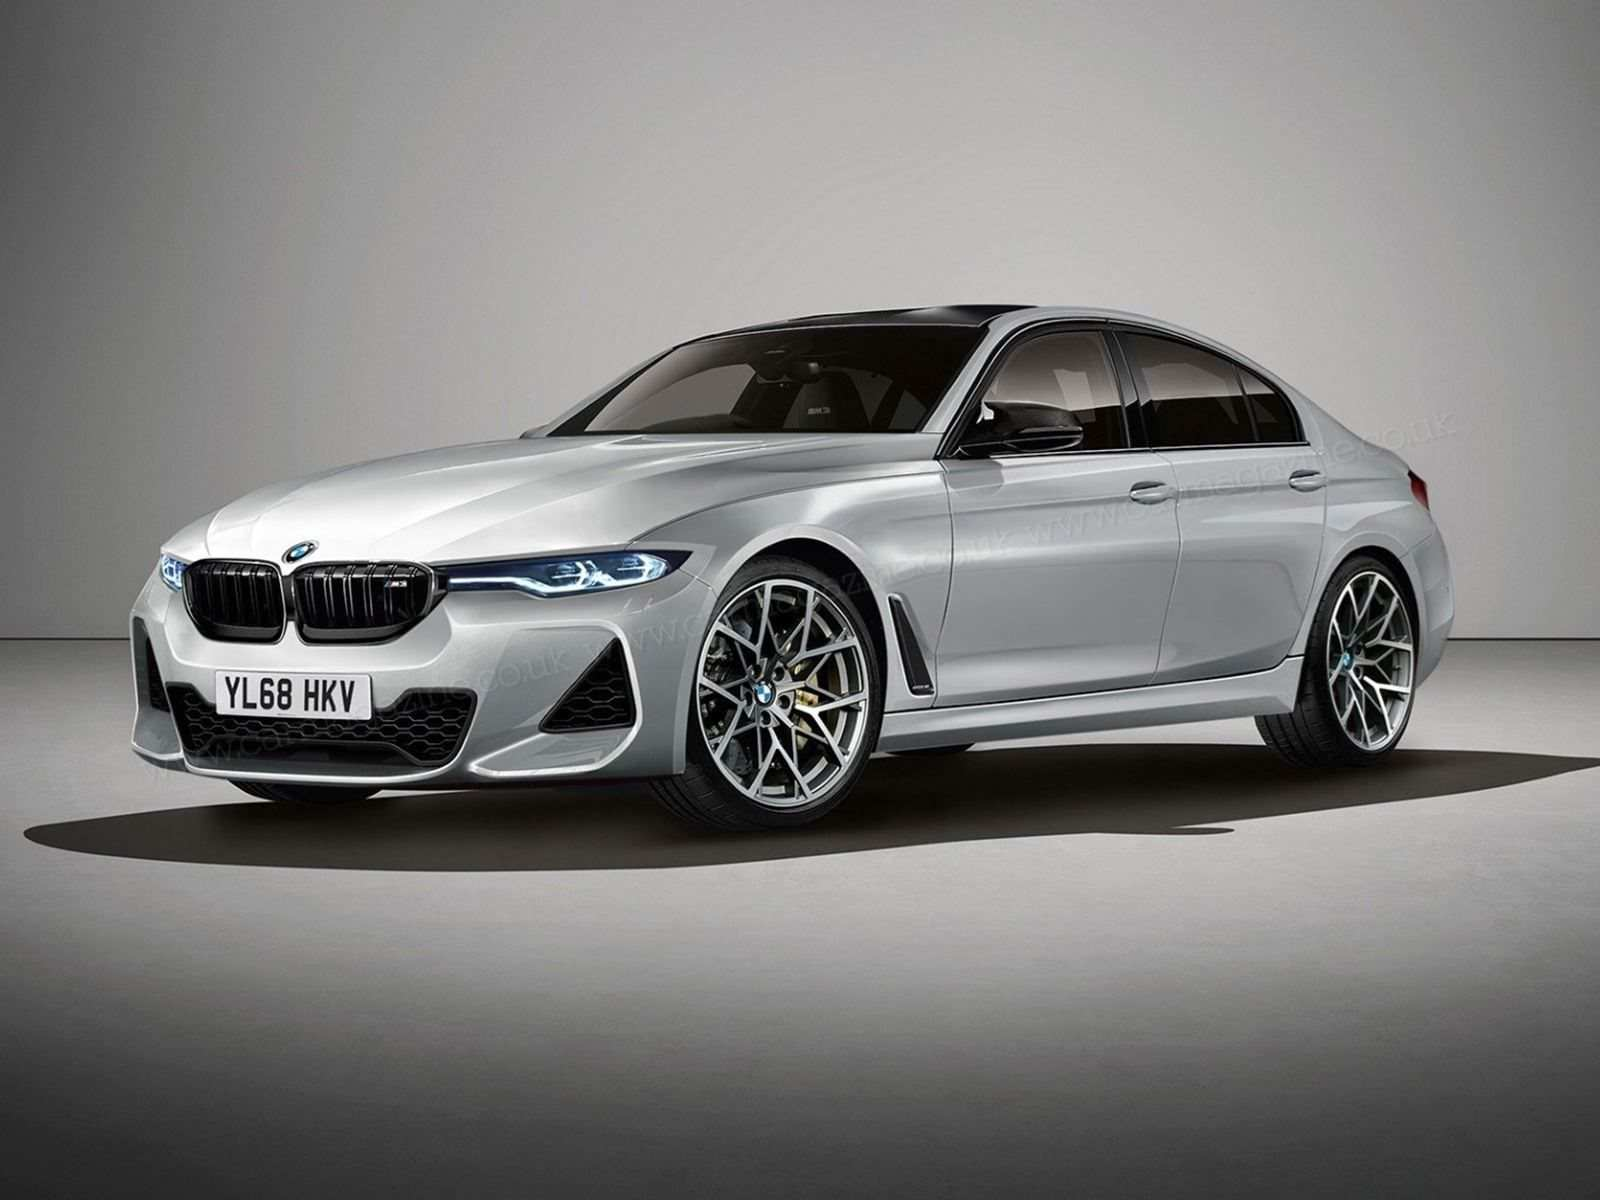 82 Best 2019 Bmw Cars Specs